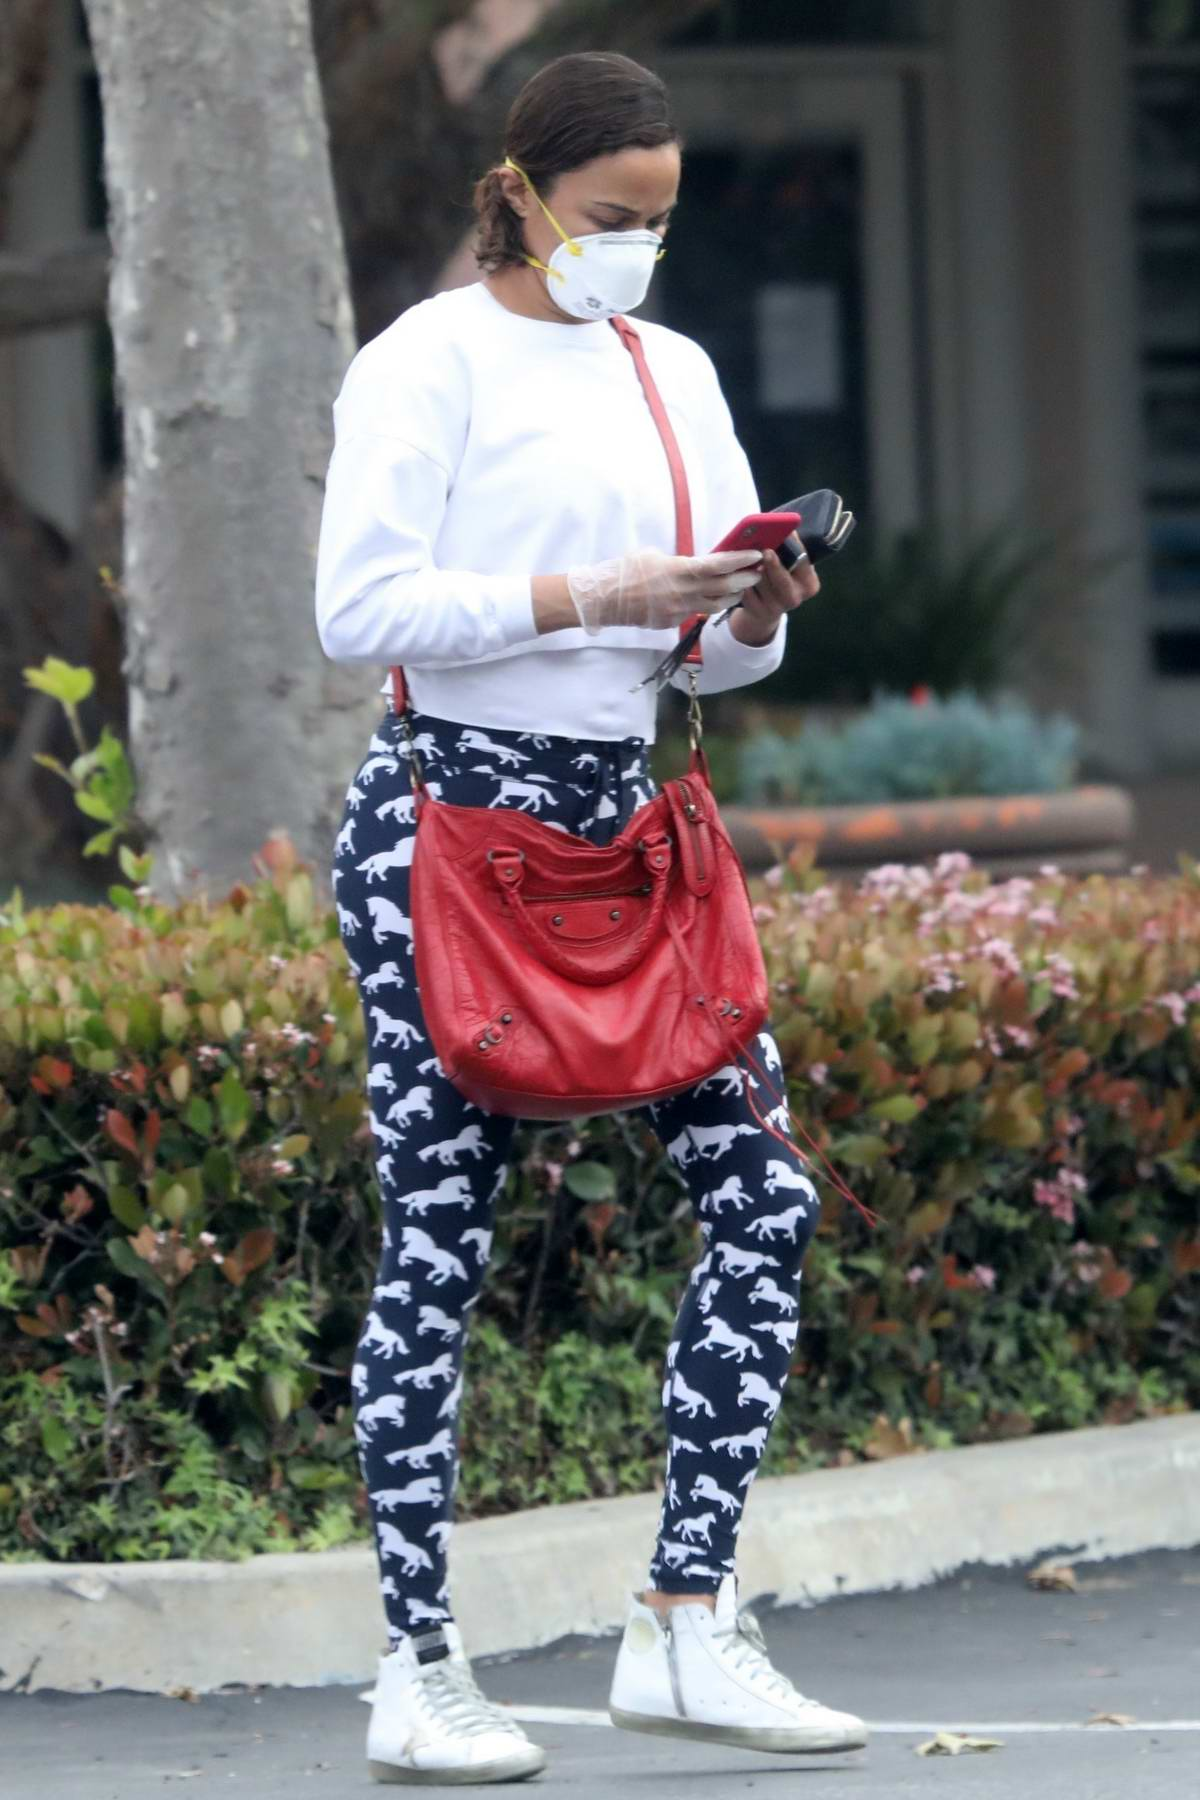 Paula Patton wears a mask and gloves as she goes to the ATM in Malibu, California